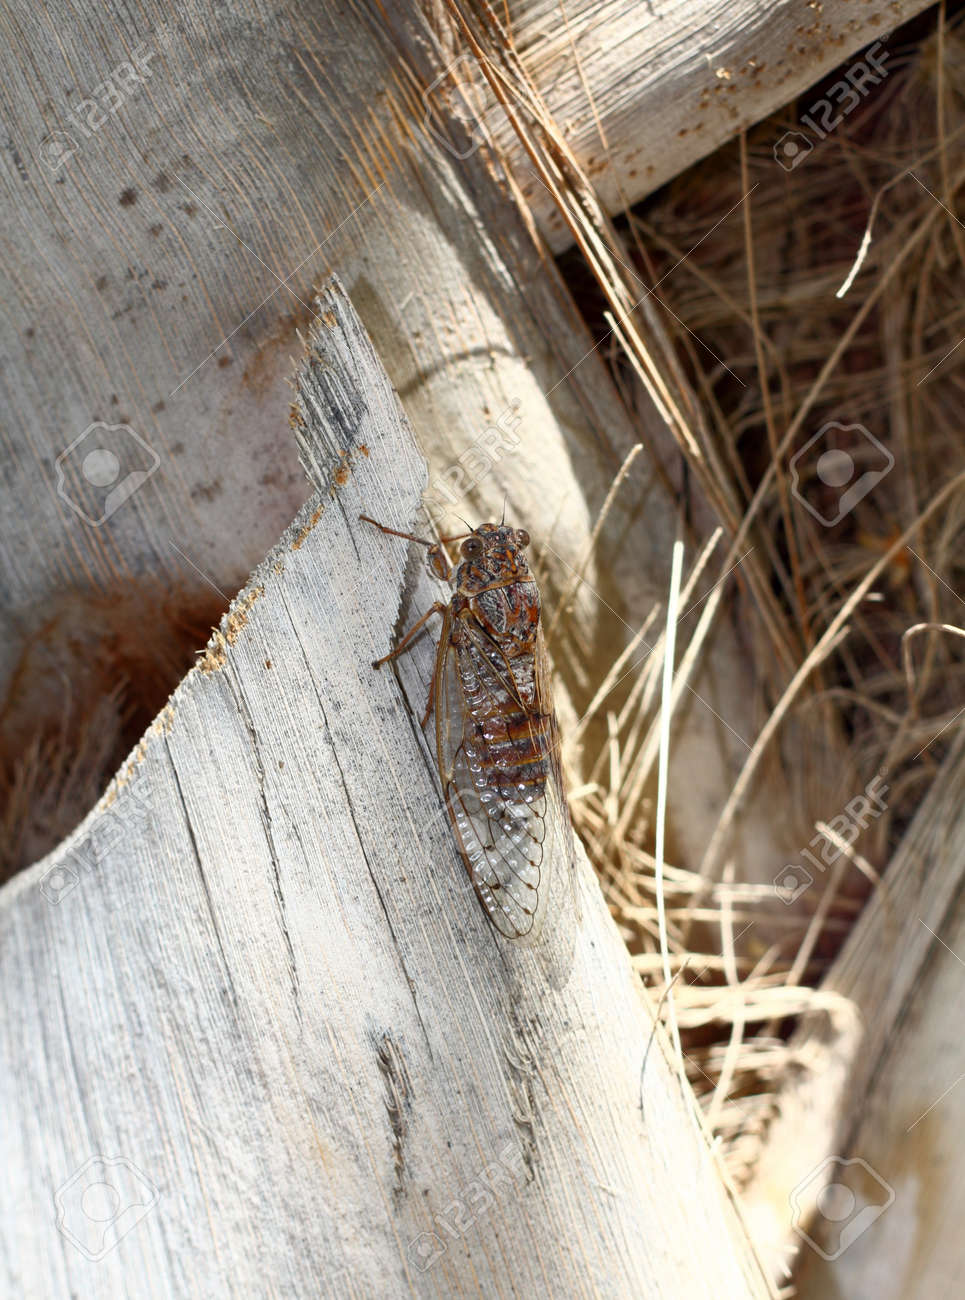 A European cicada showing its near perfect camouflage - 15845167